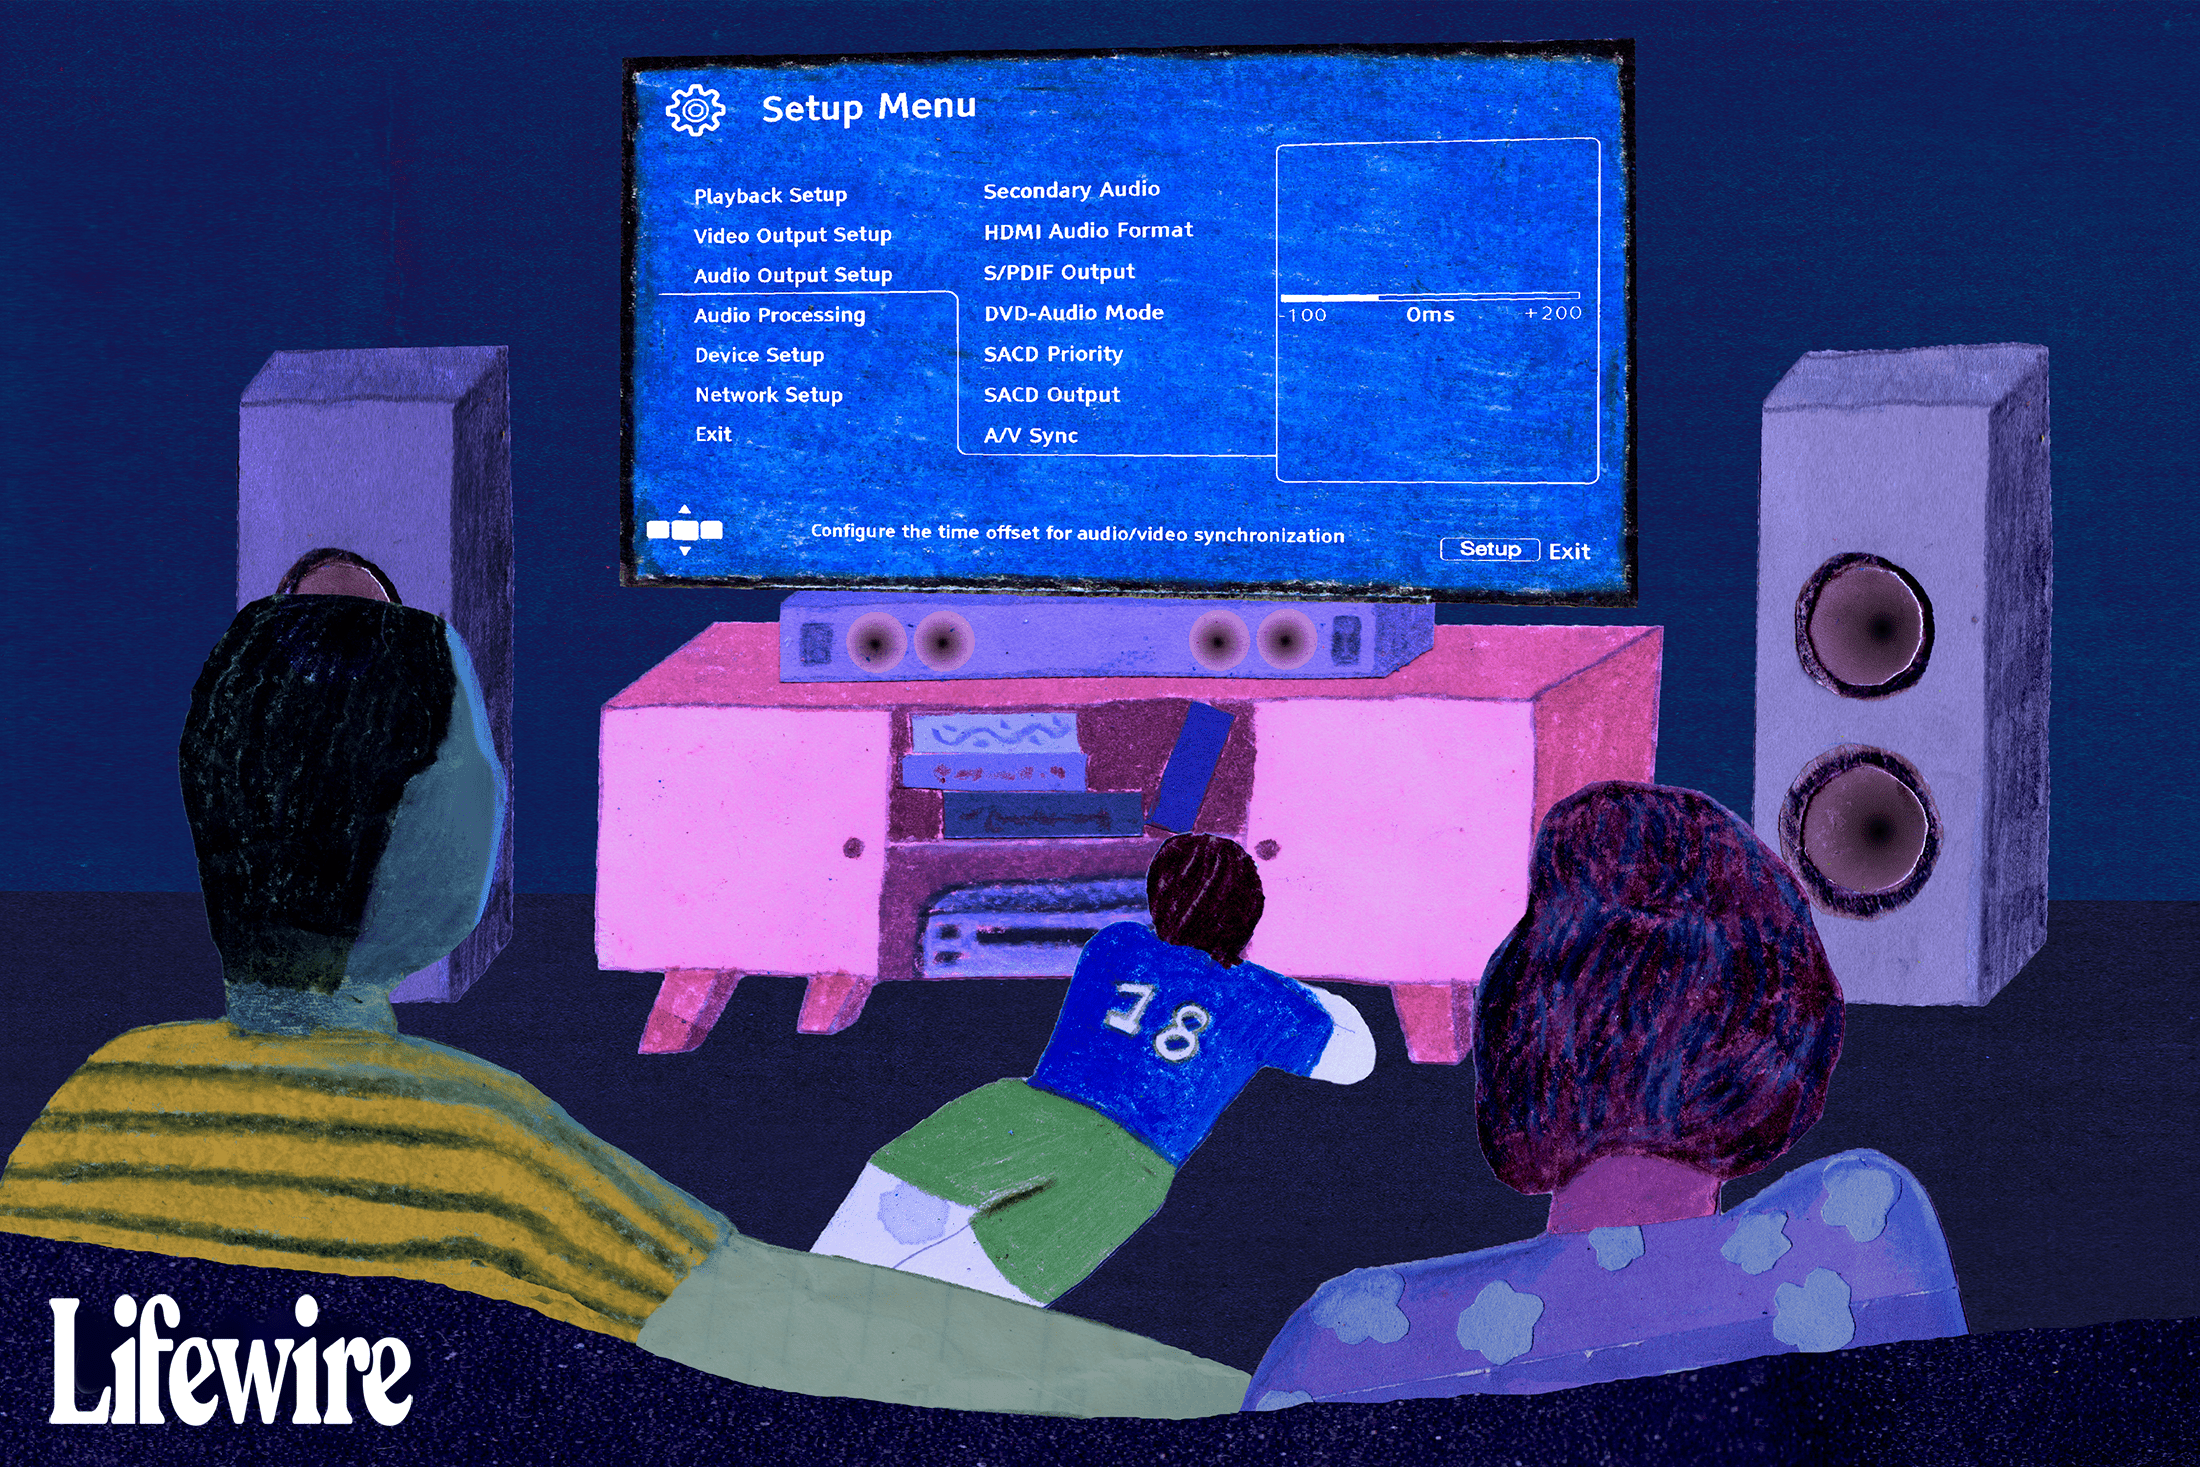 Illustration of a family looking at a TV with the Setup Menu onscreen